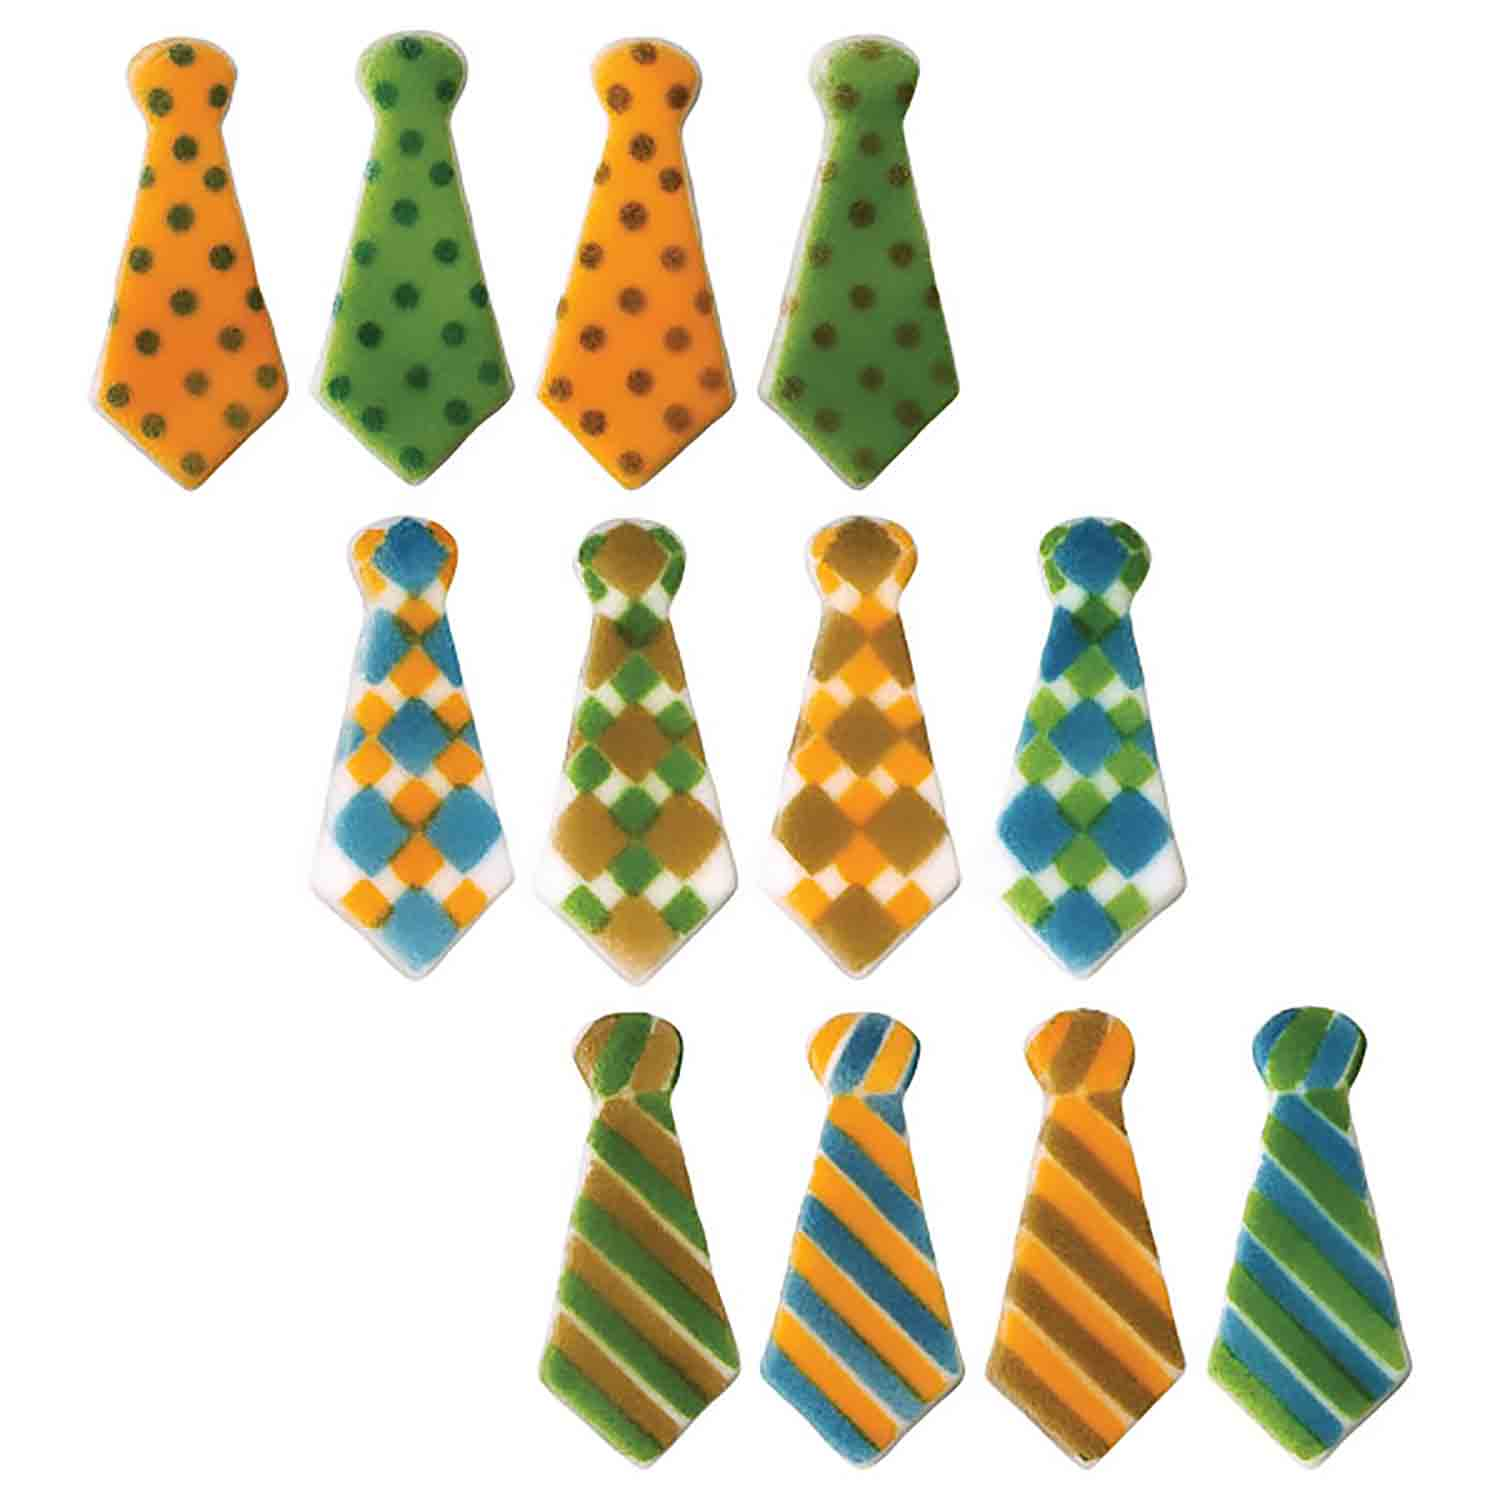 Dec-Ons® Molded Sugar - Tie Assortment